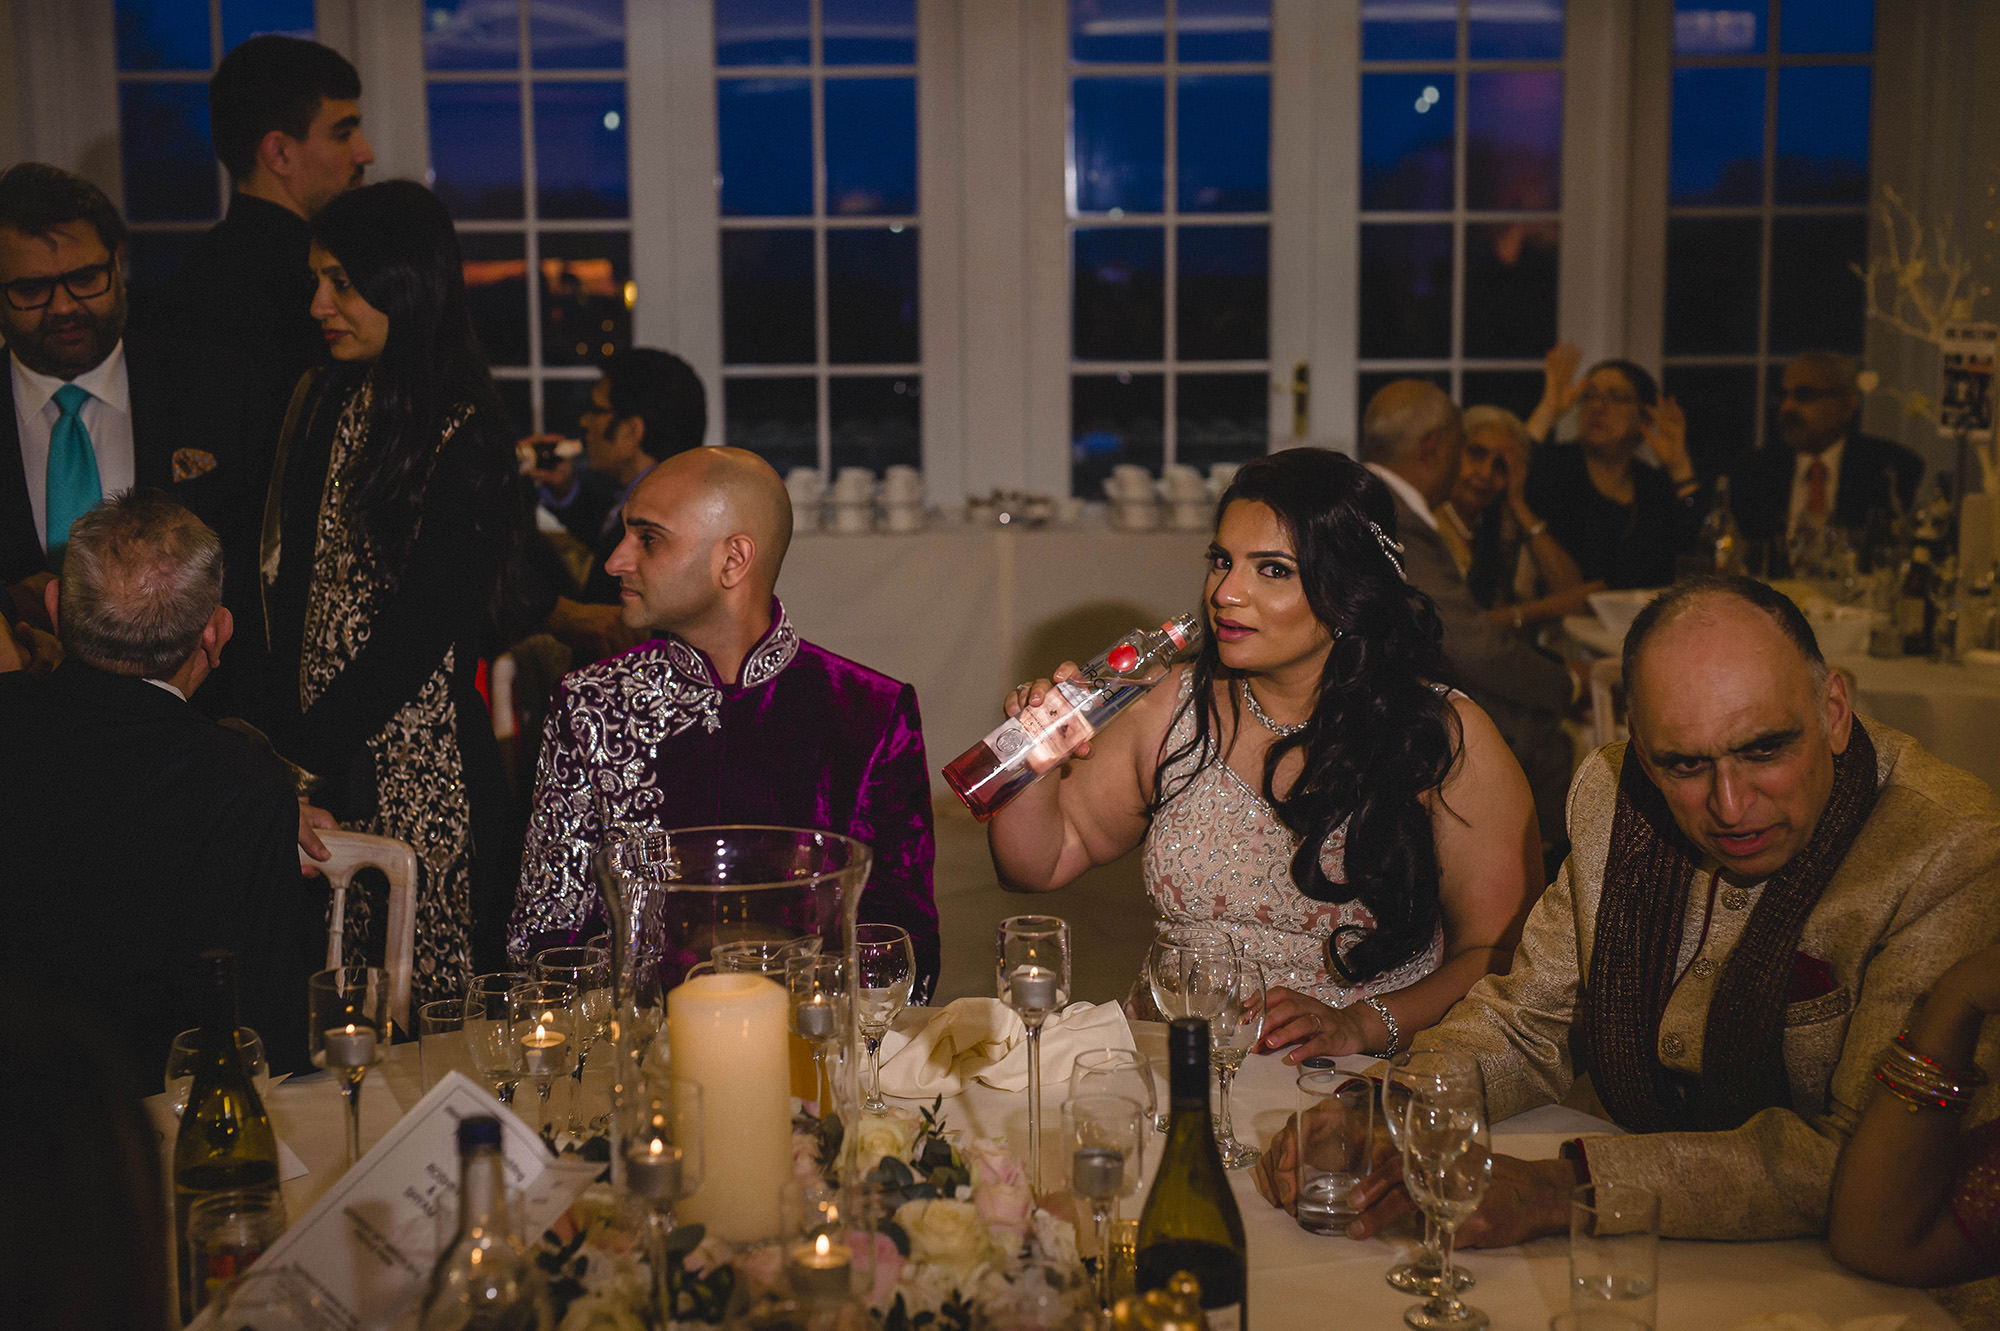 bride drinking vodka during her wedding reception